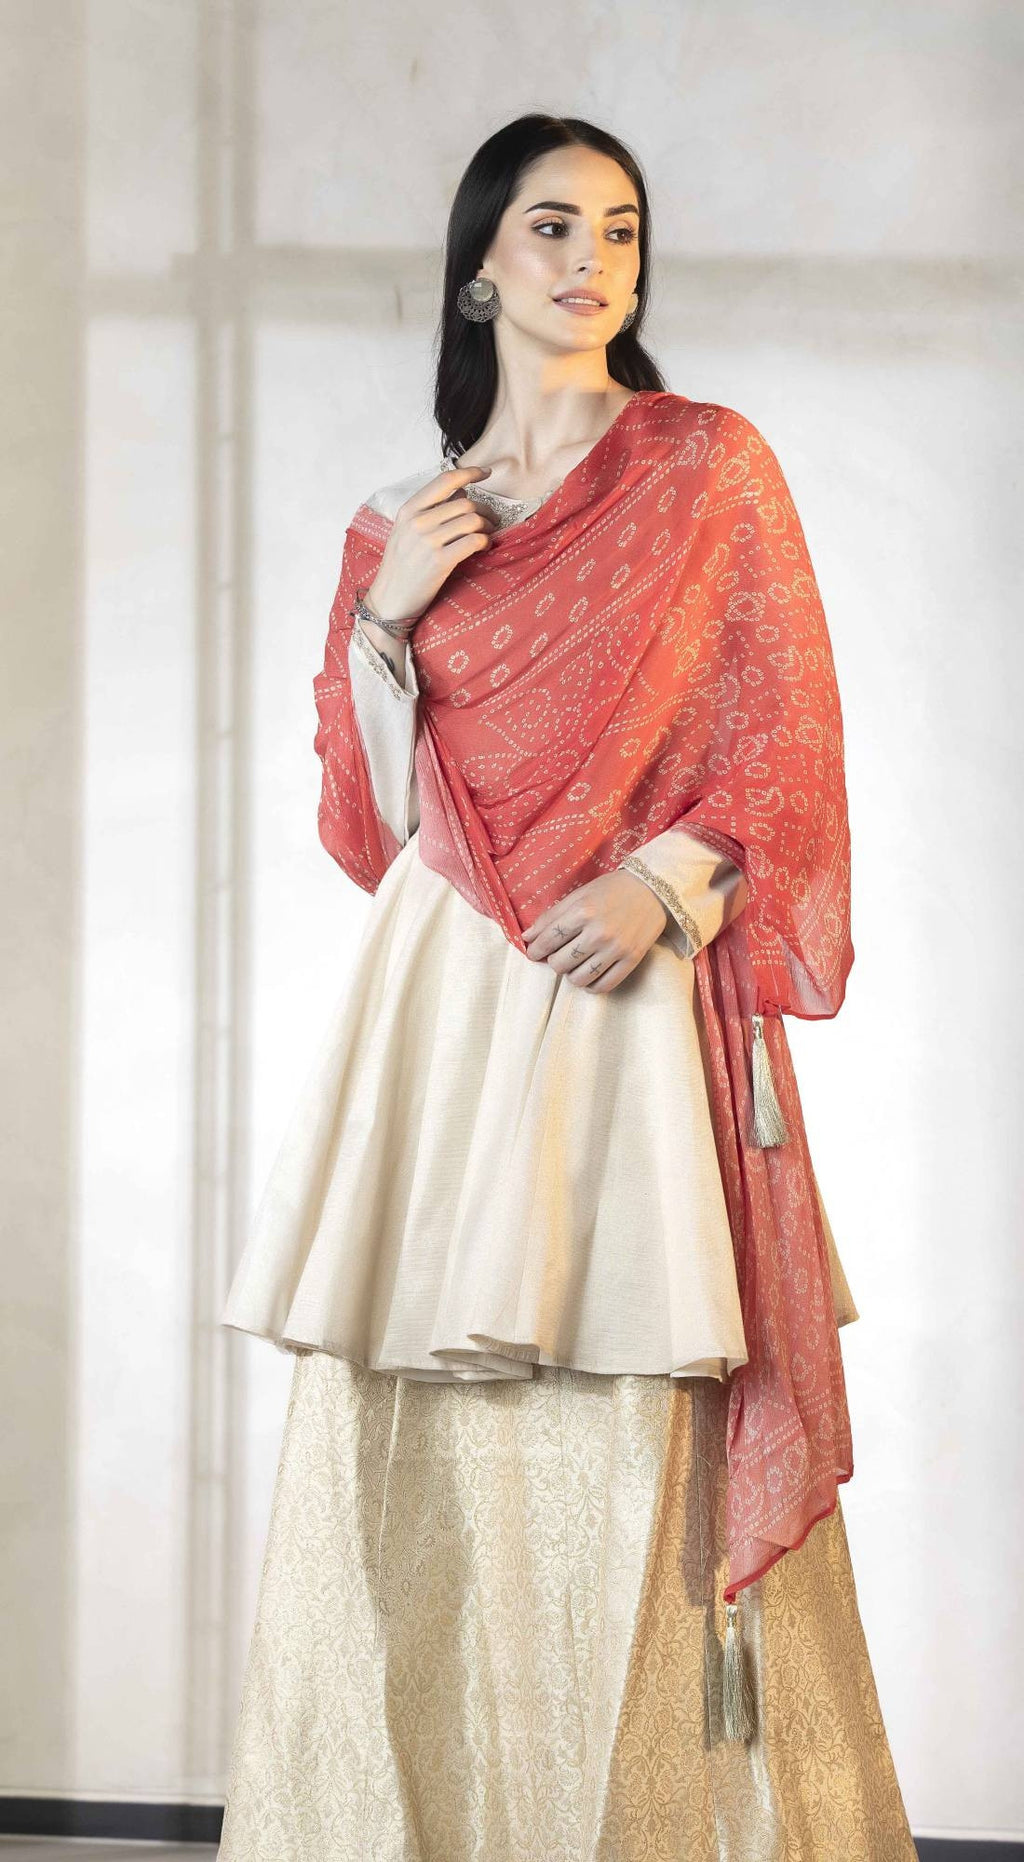 Banarasi kurta & sharara set paired with bandhani dupatta